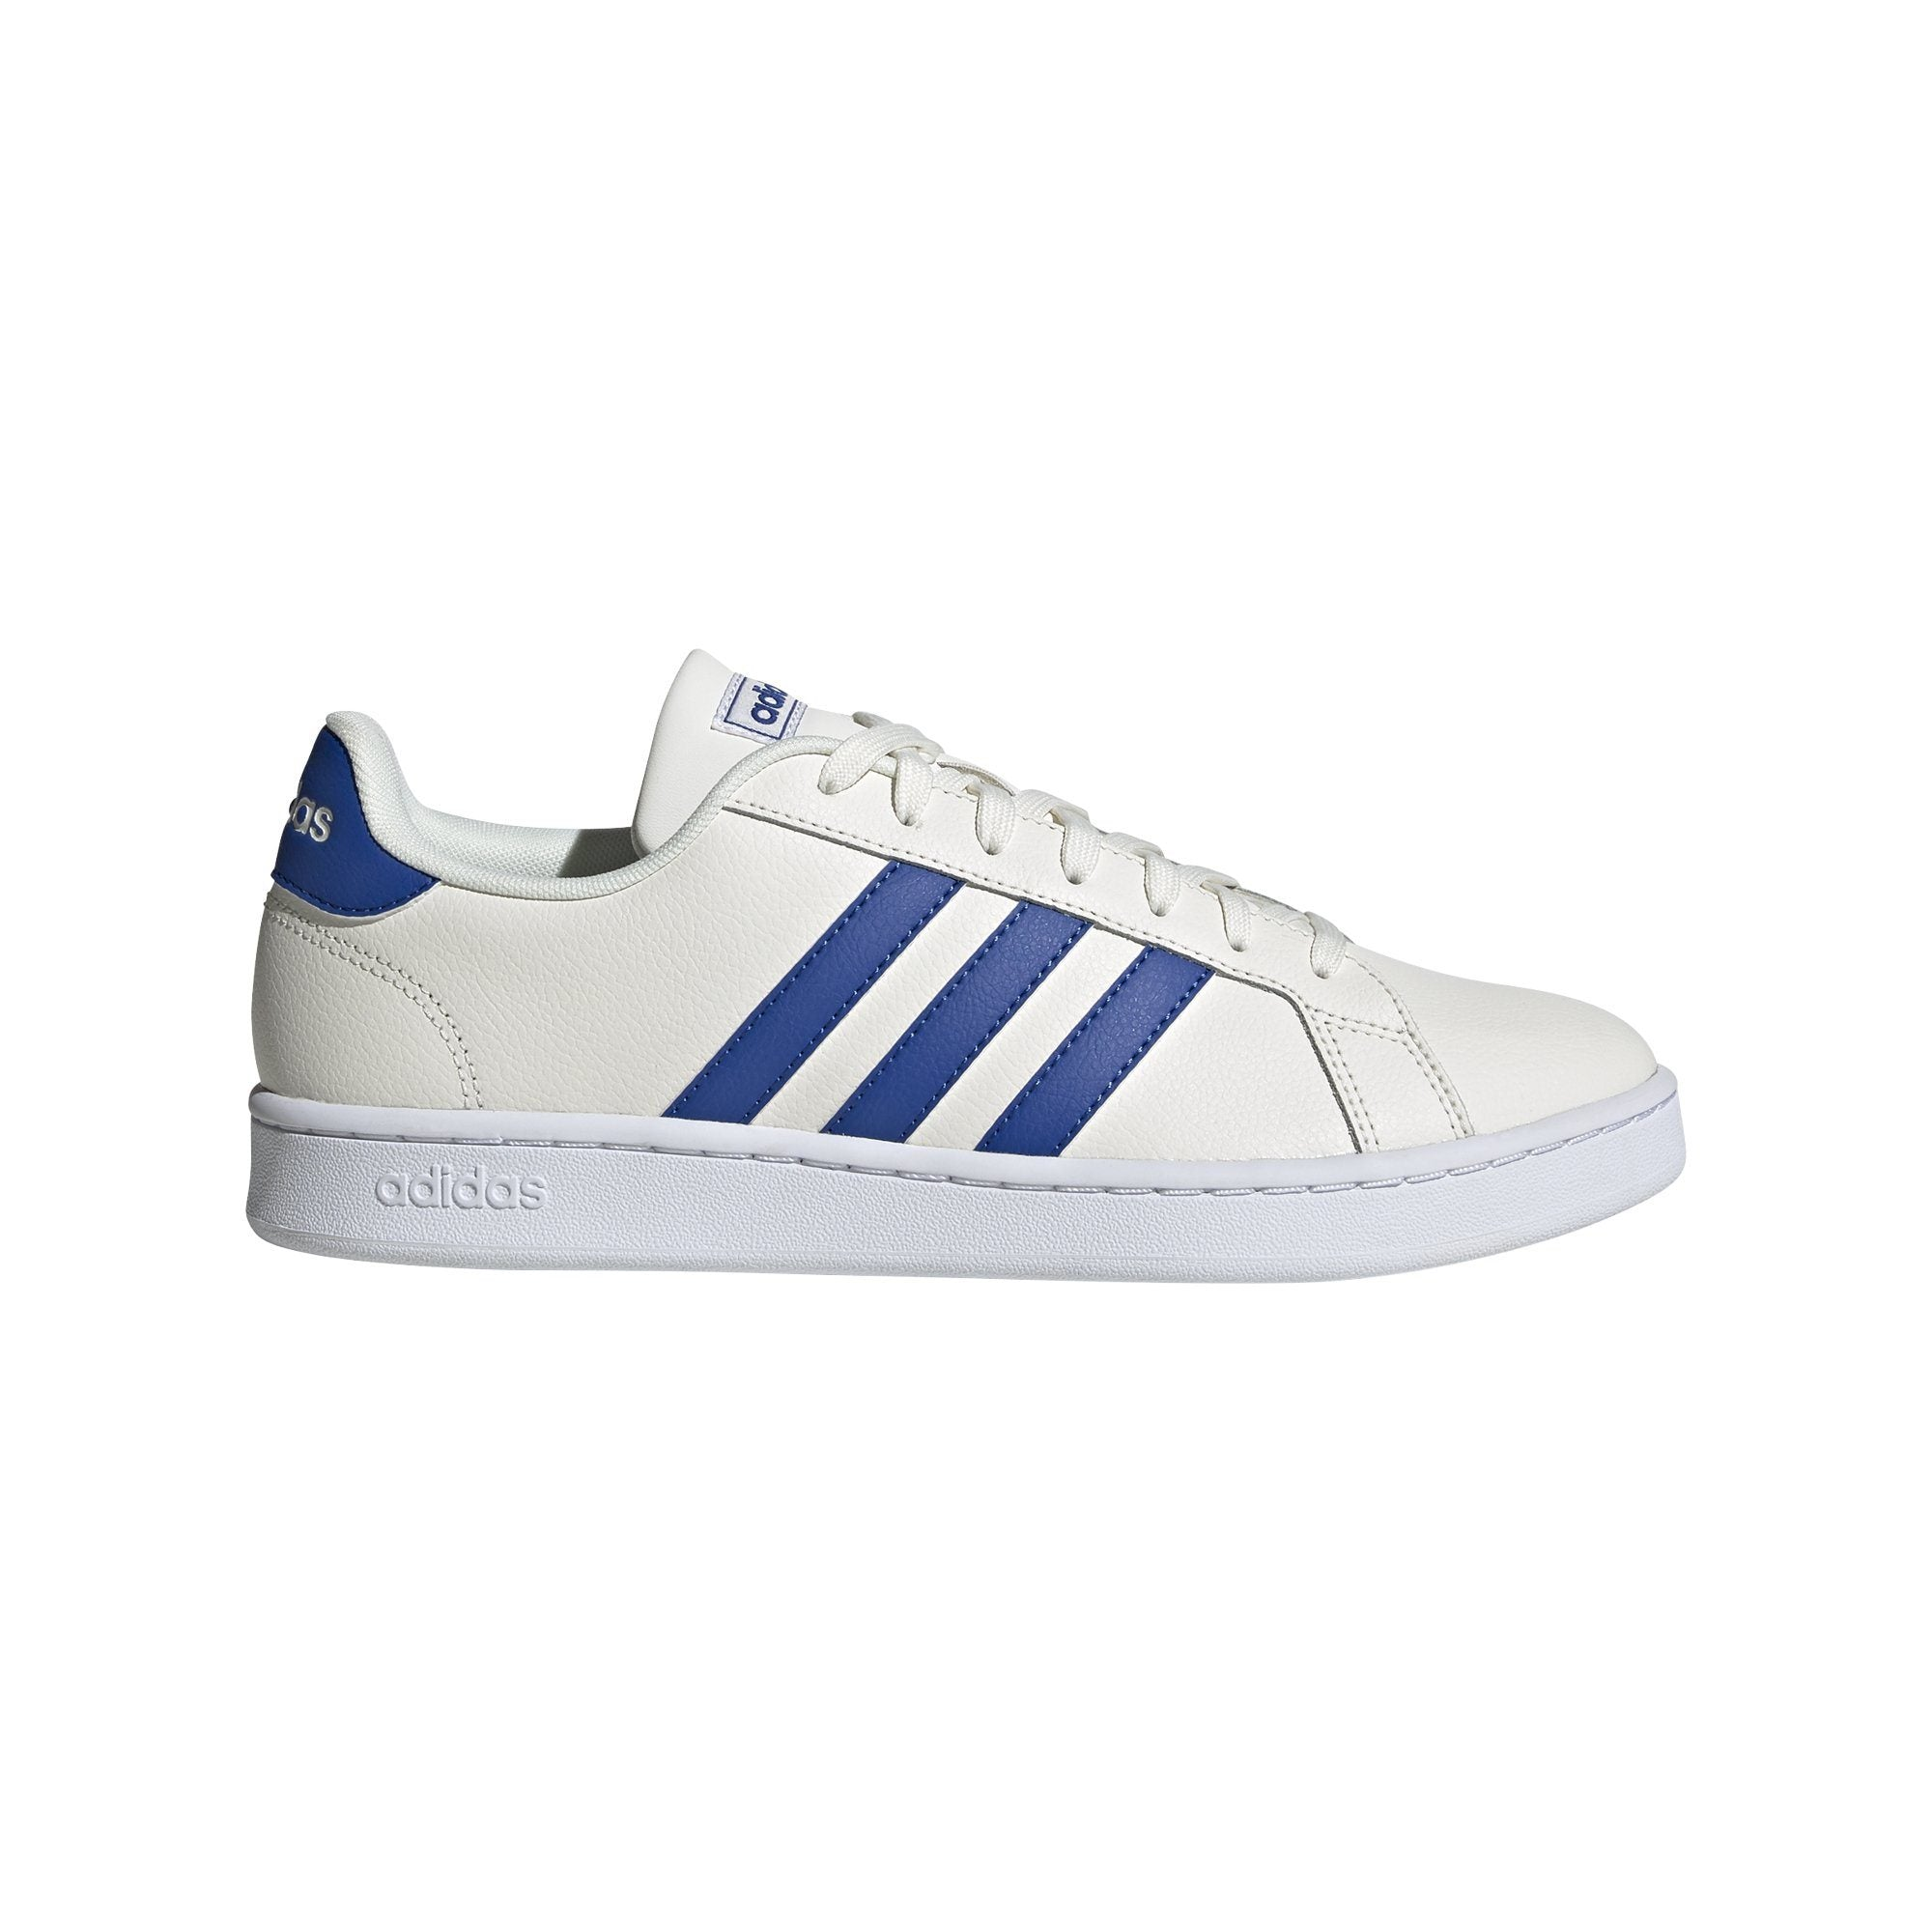 Adidas Mens Grand Court Shoes - Cloud White/Team Royal Blue/Ftwr White SP-Footwear-Mens Adidas